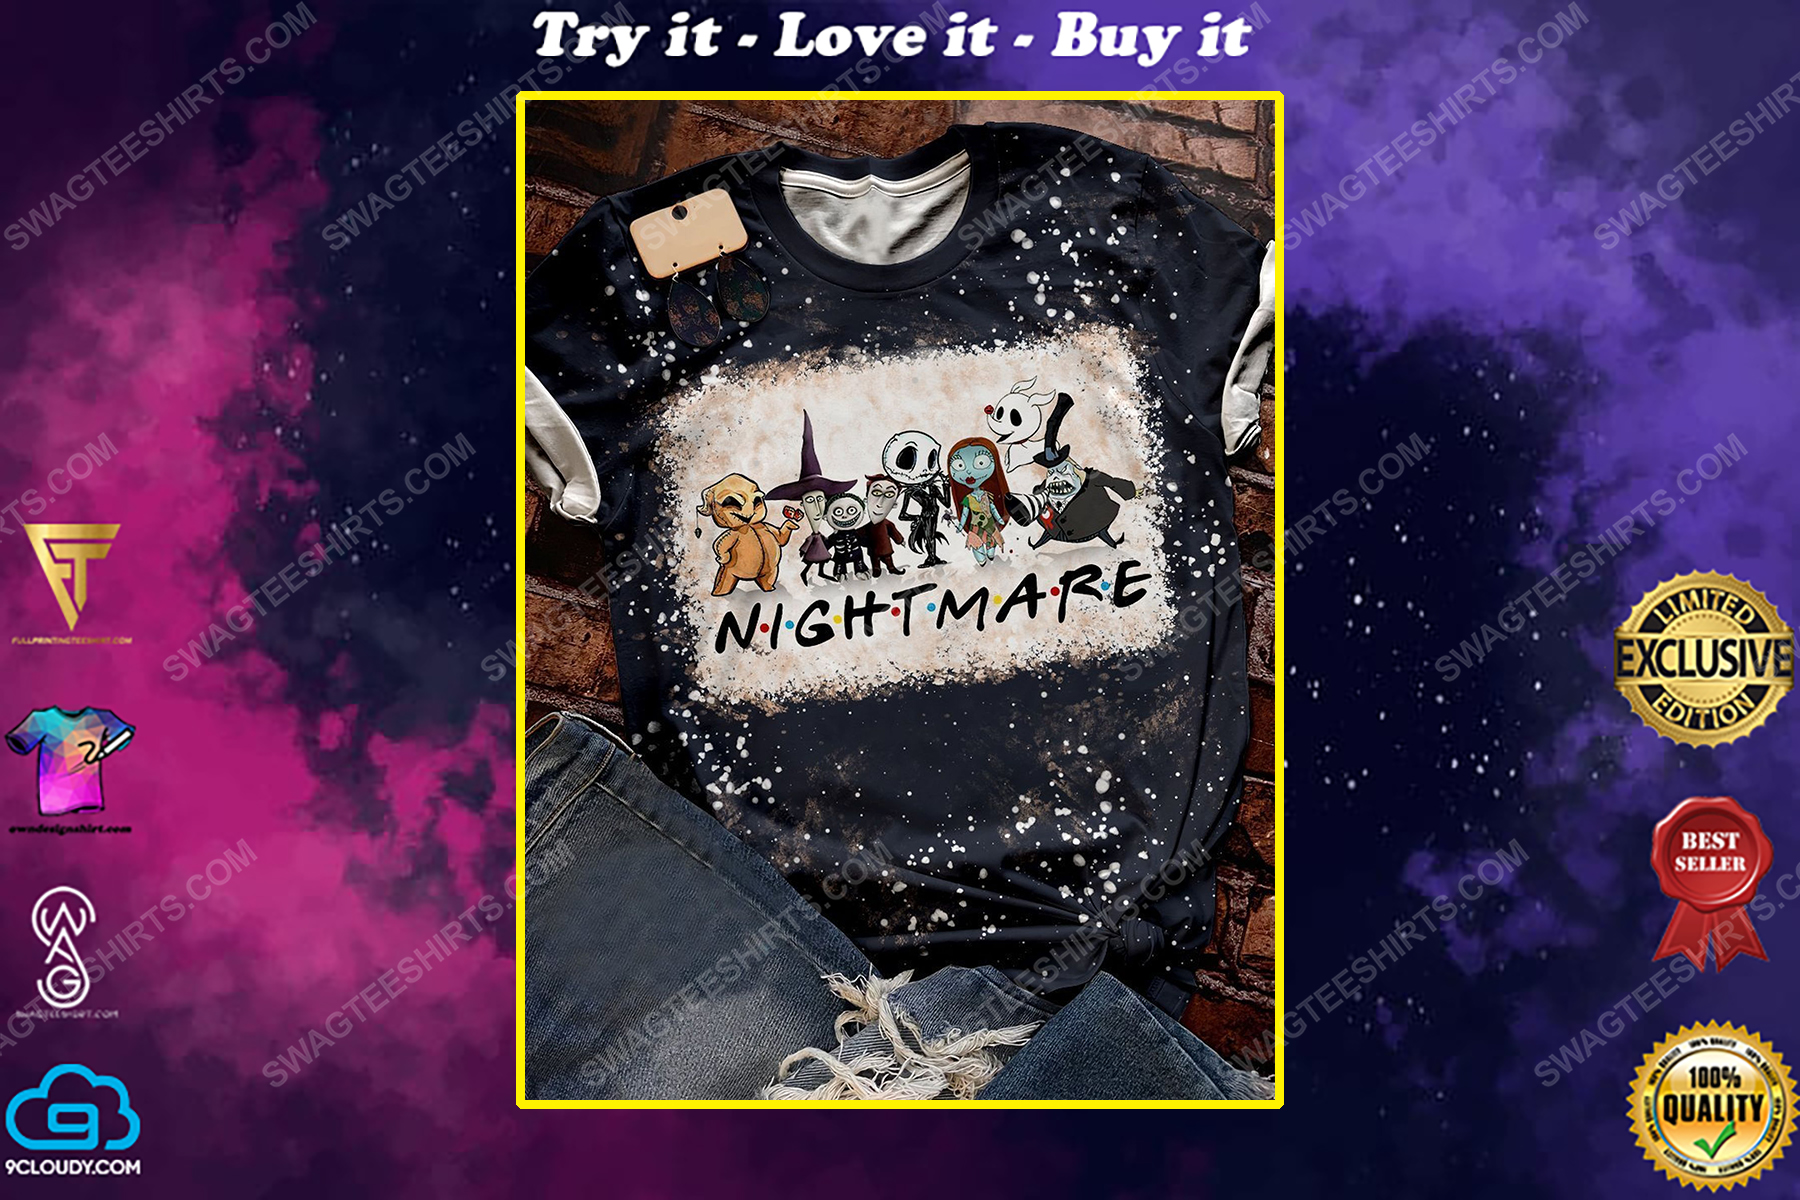 The nightmare before christmas bleached shirt